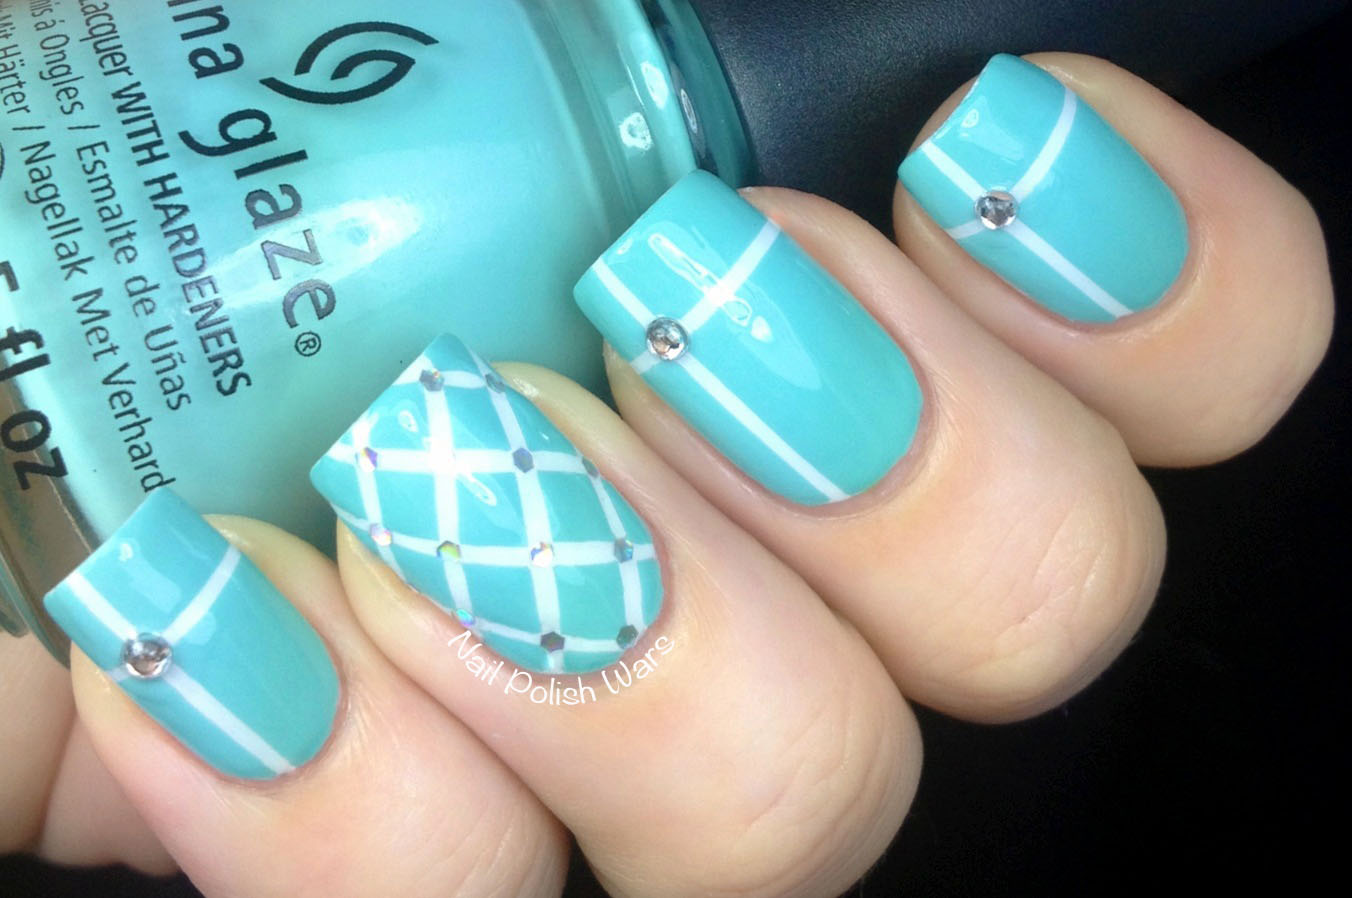 Nail Polish Wars: Tiffany & Co. Inspired